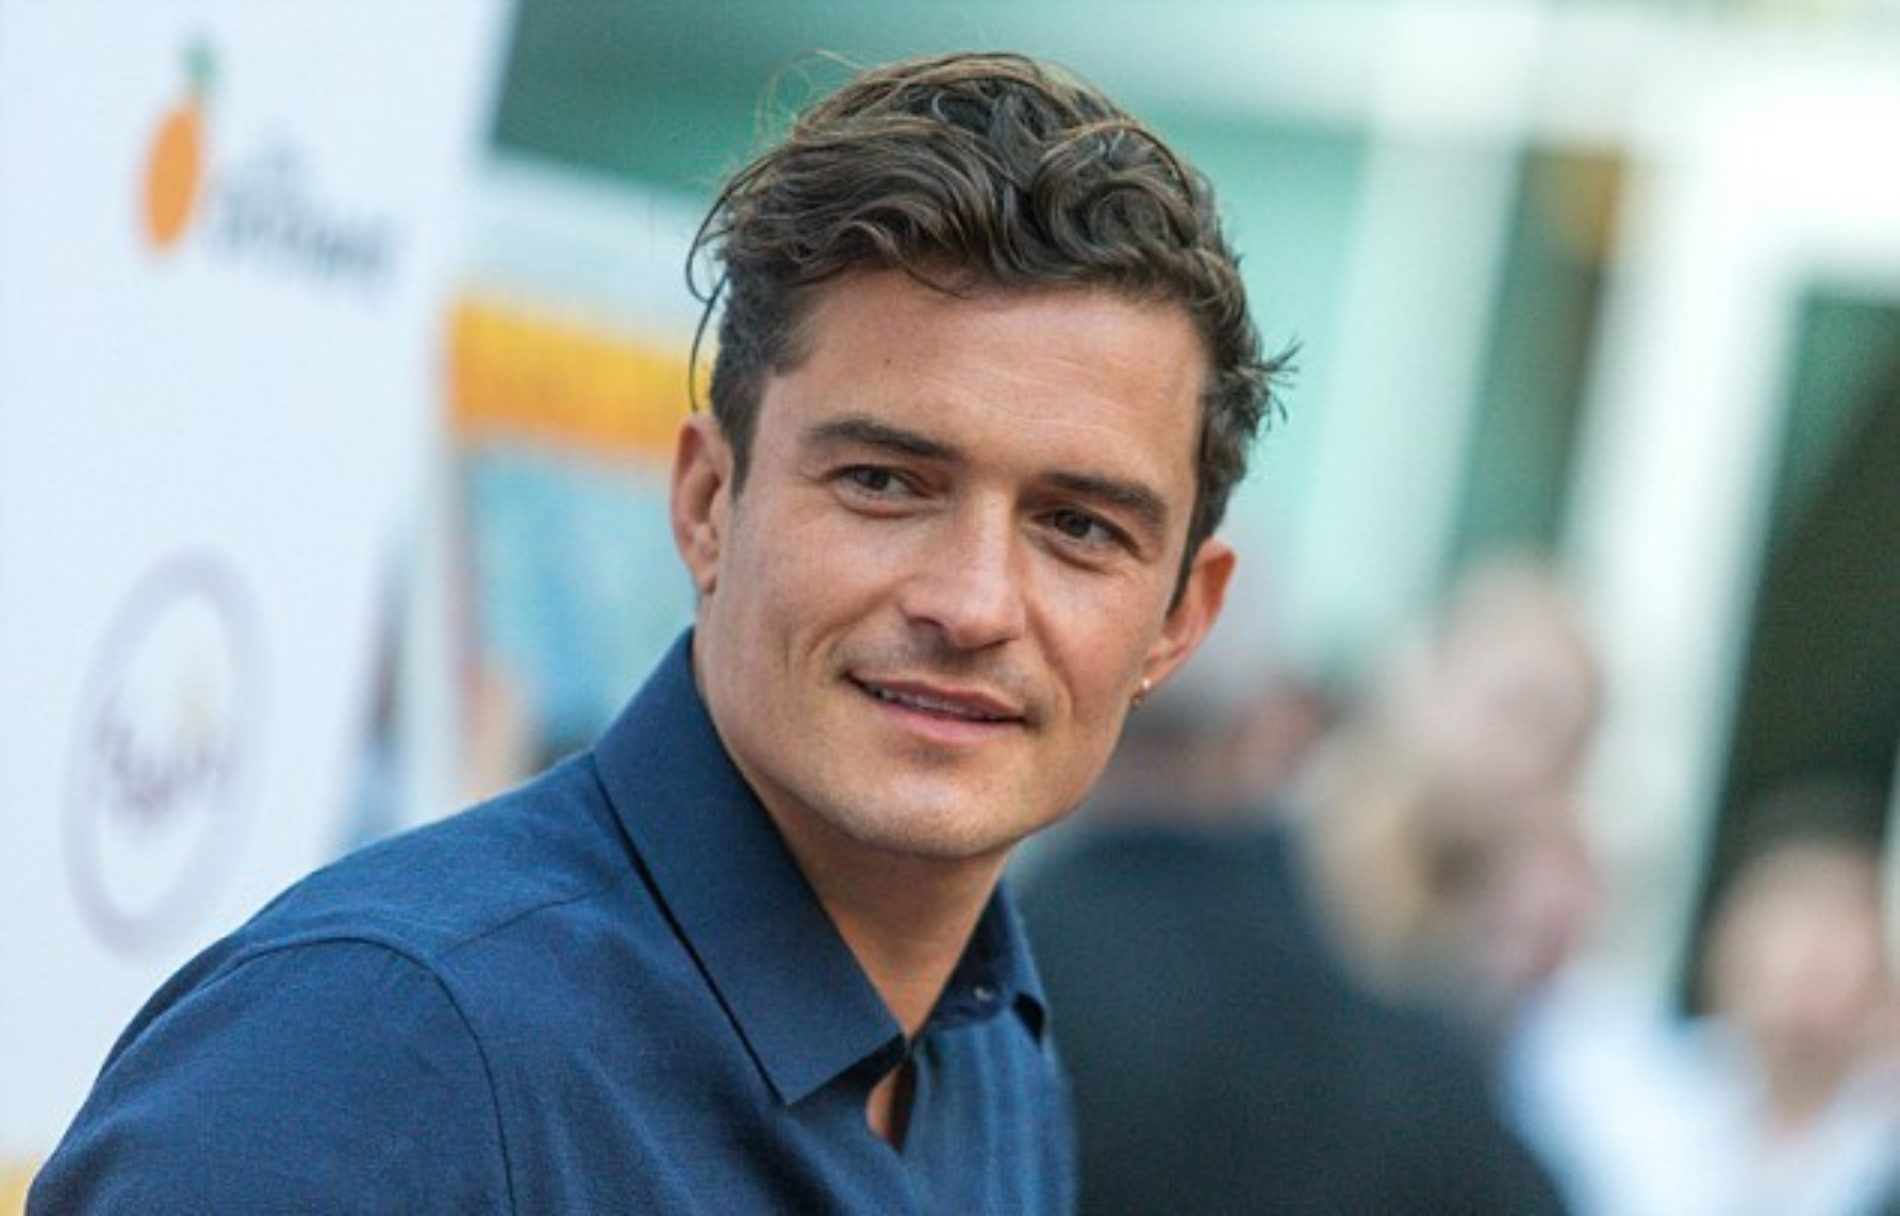 Orlando Bloom's Full Frontal Nudity Trends On The Internet